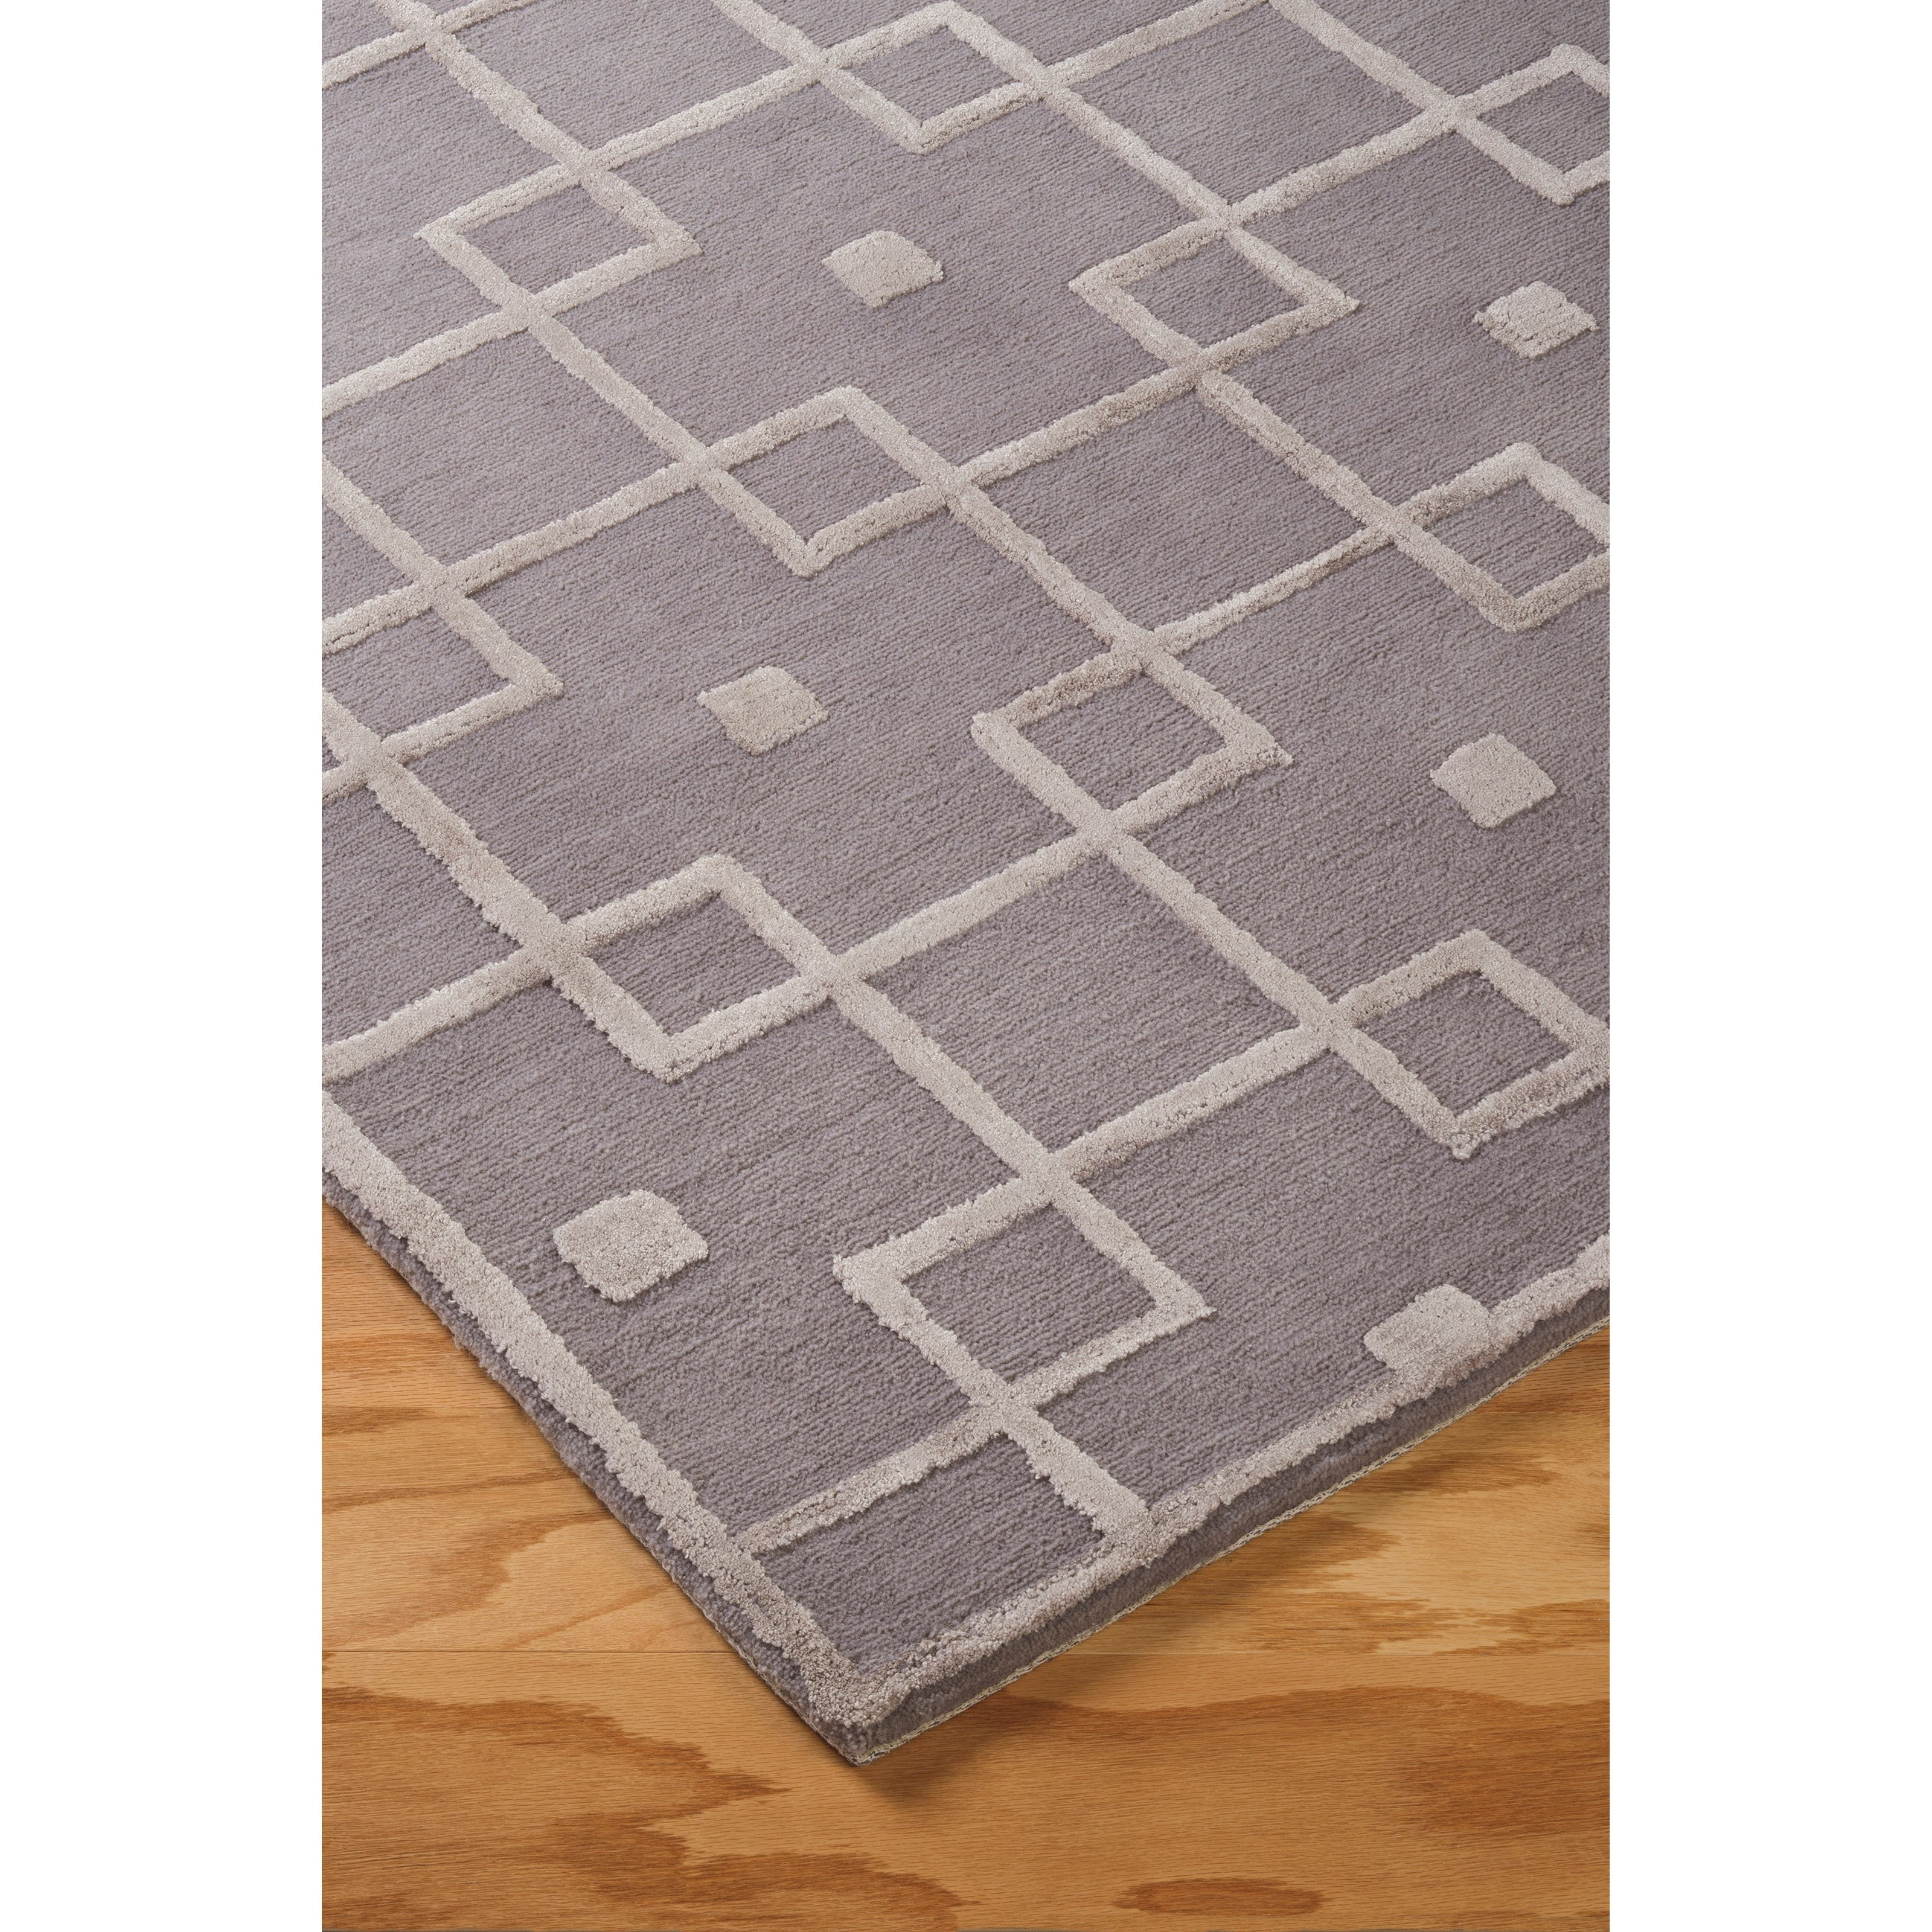 Signature design by ashley contemporary area rugs r401431 for Modern design area rugs